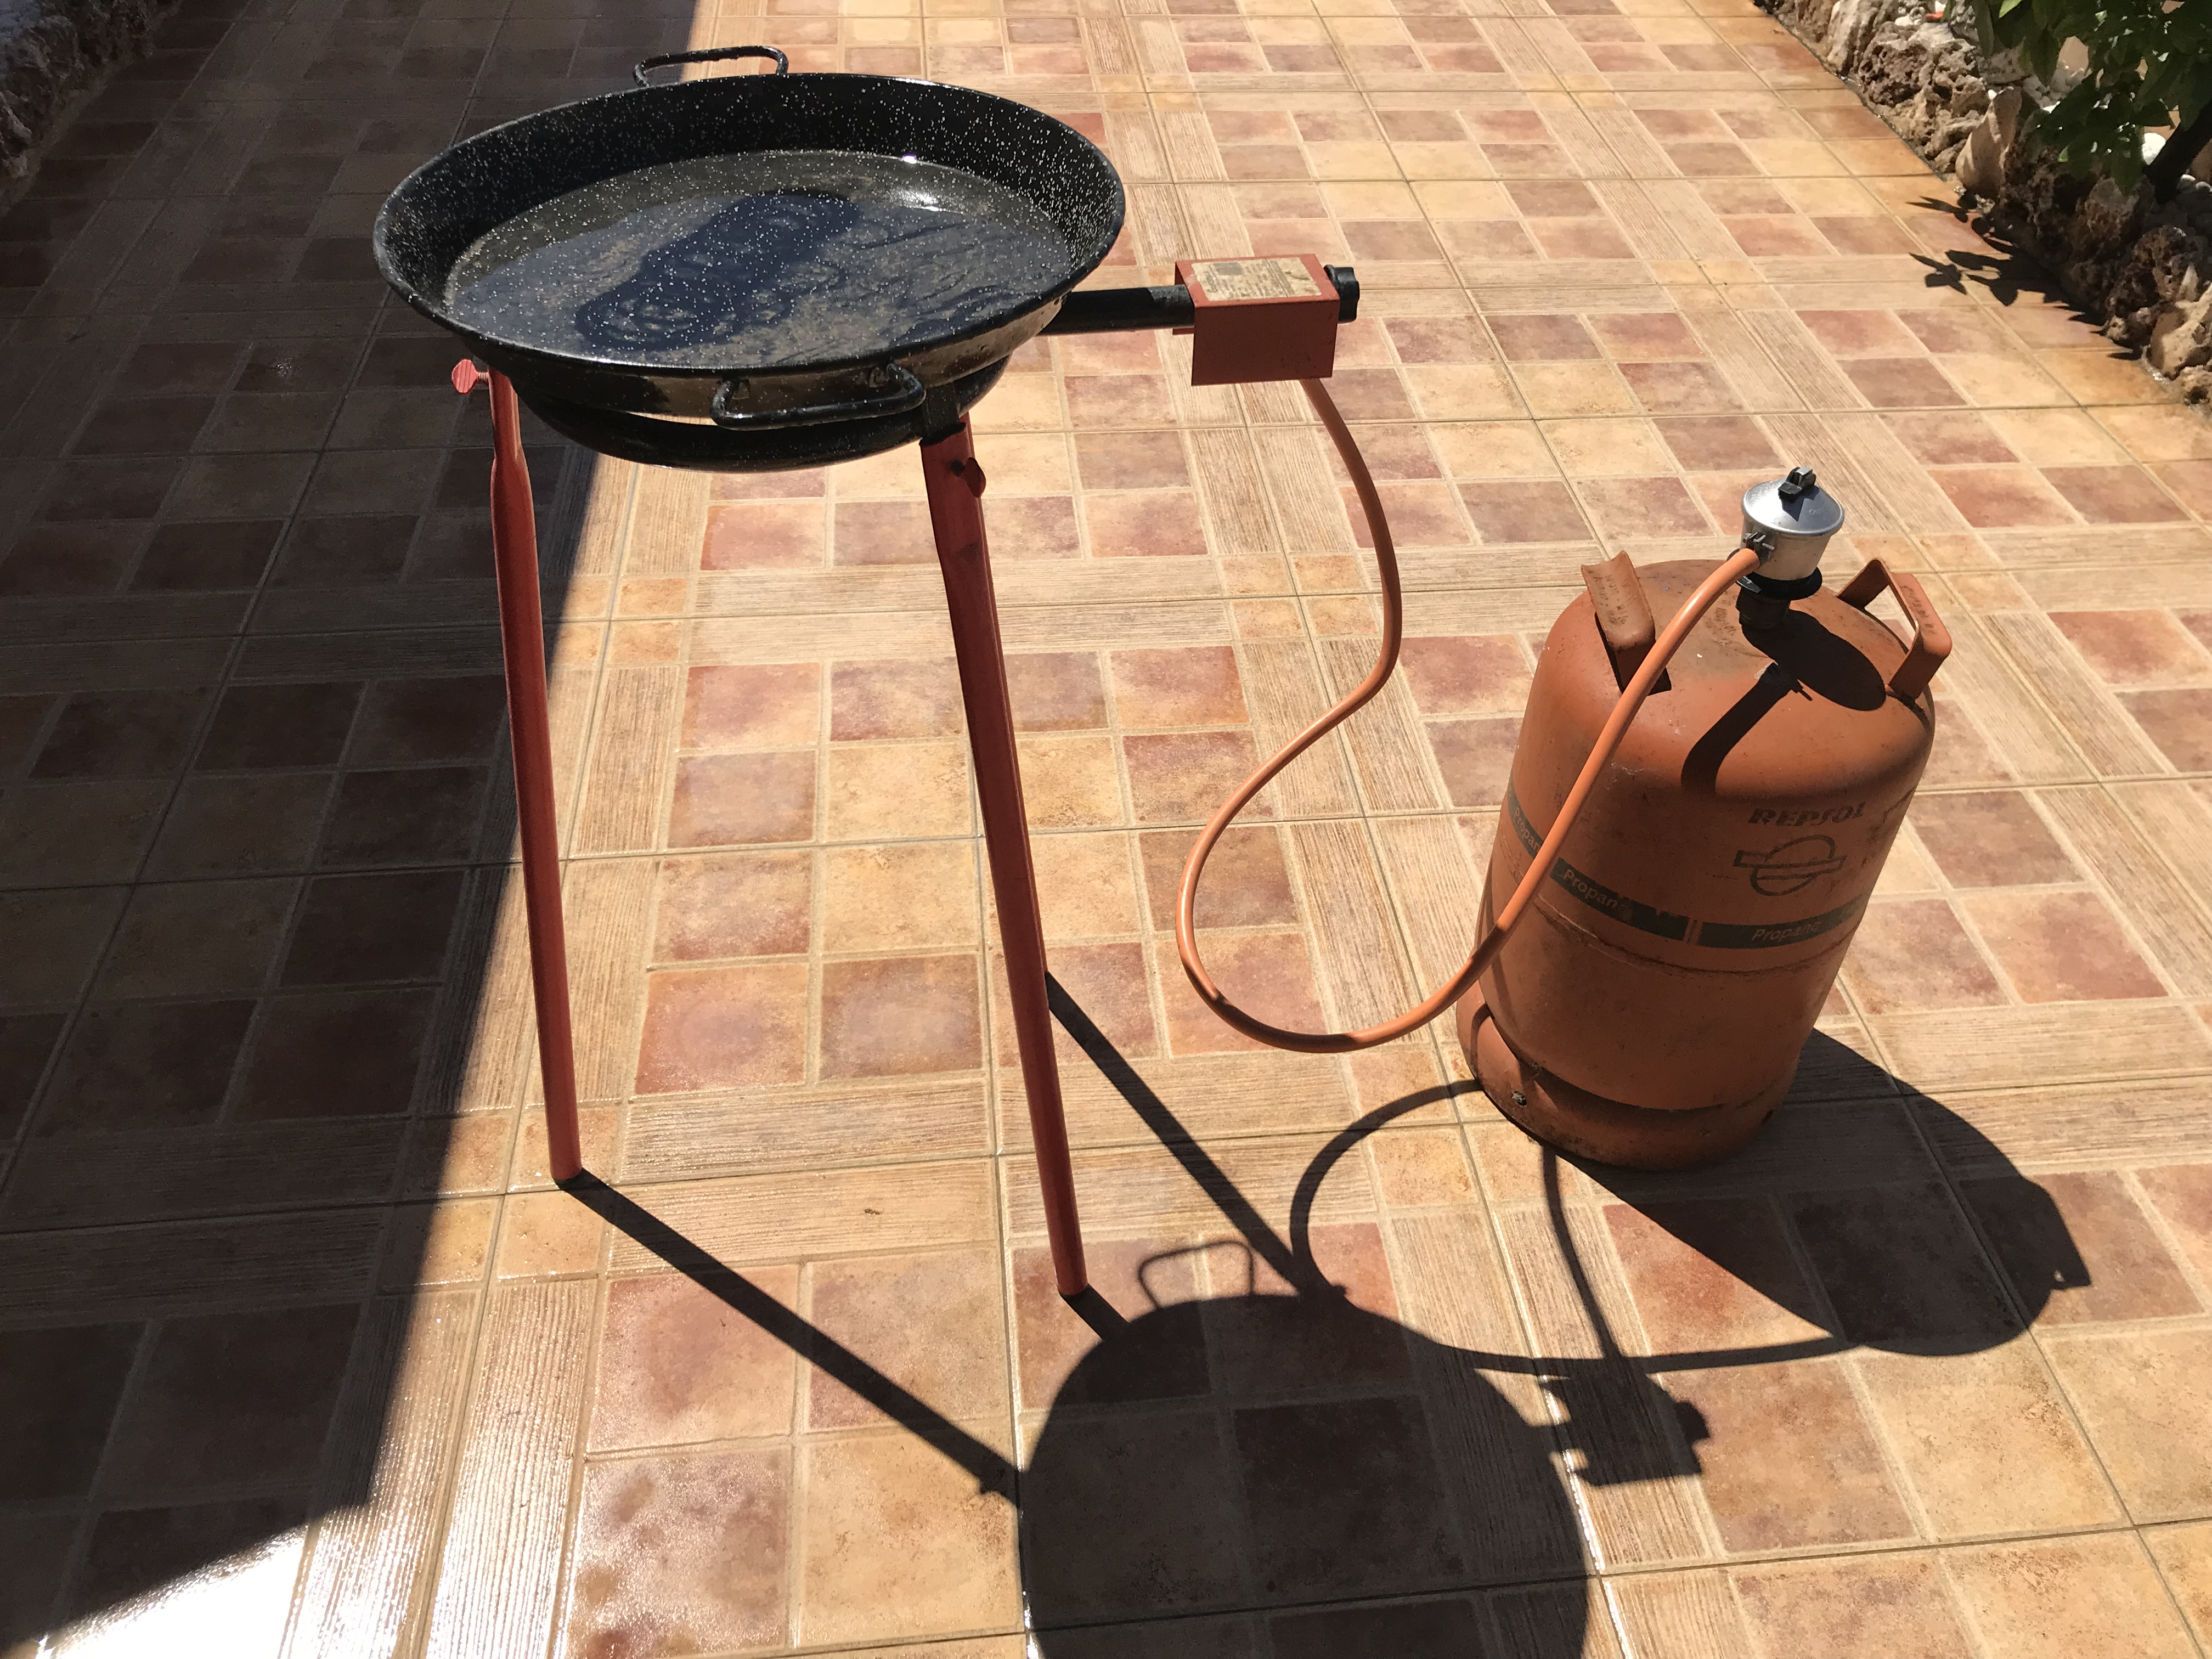 For sale: Gas barbecue